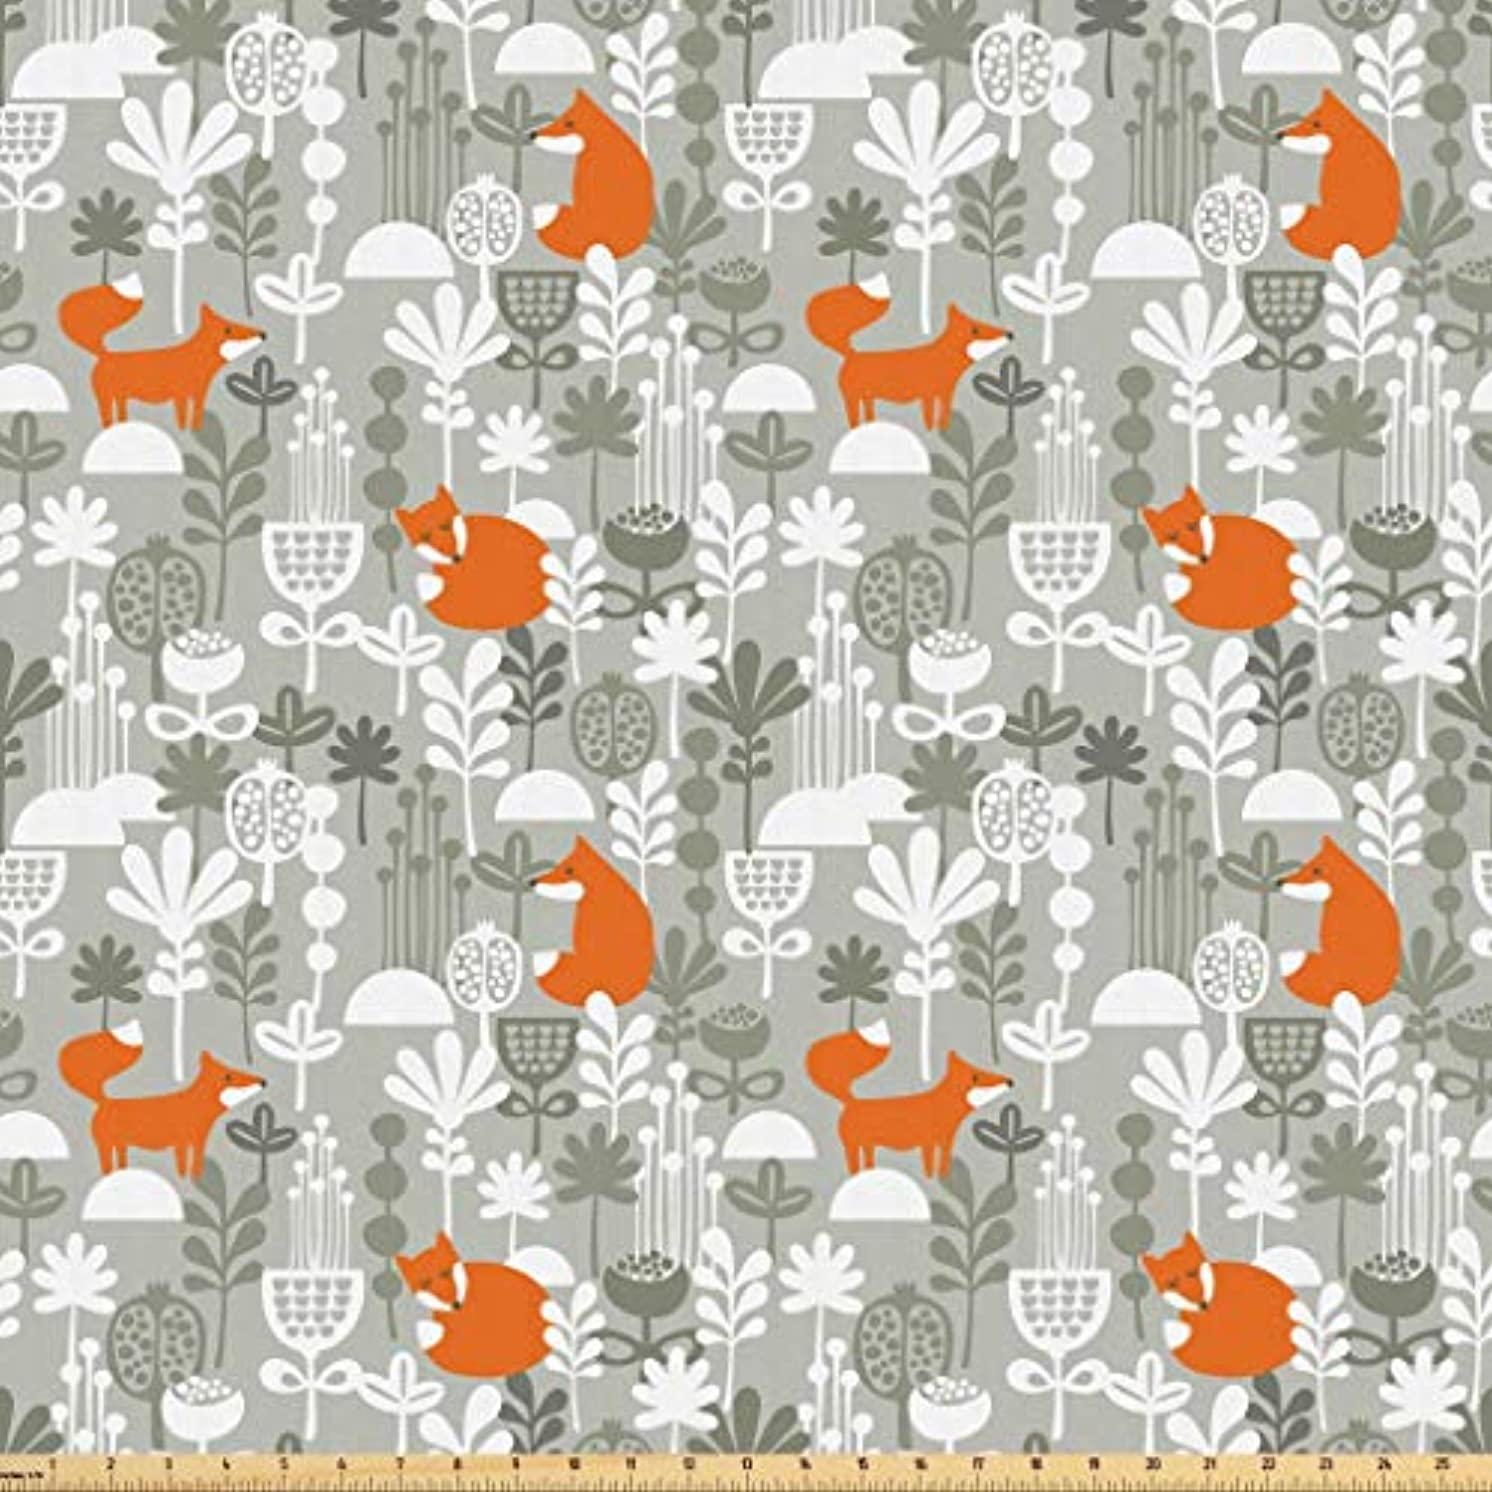 Lunarable Autumn Fall Fabric by The Yard, Cute Fox Animal Sleeping in The Forest Plants Woodland Wildlife Theme, Microfiber Fabric for Arts and Crafts Textiles & Decor, 1 Yard, Orange Grey White